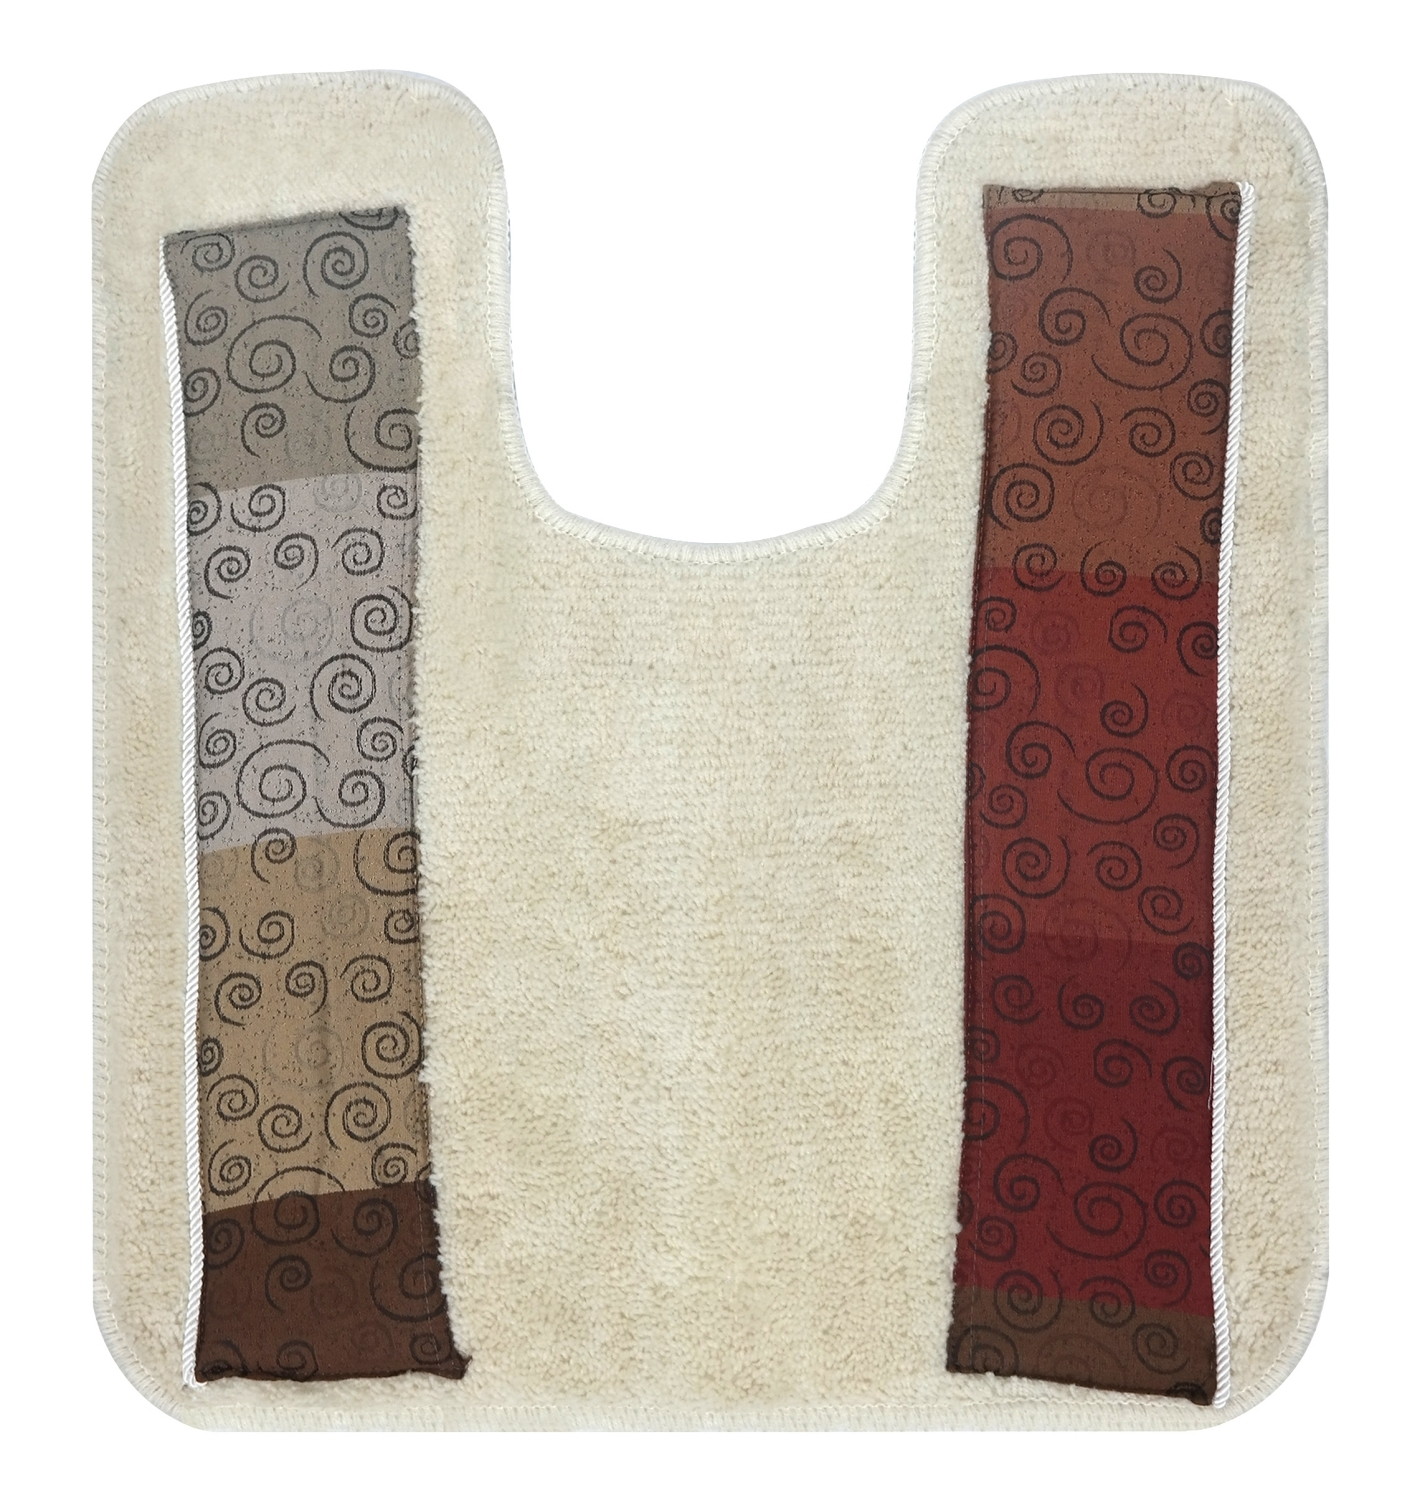 Popular Bath Miramar Bath Collection Bathroom Contour Toilet Commode Rug